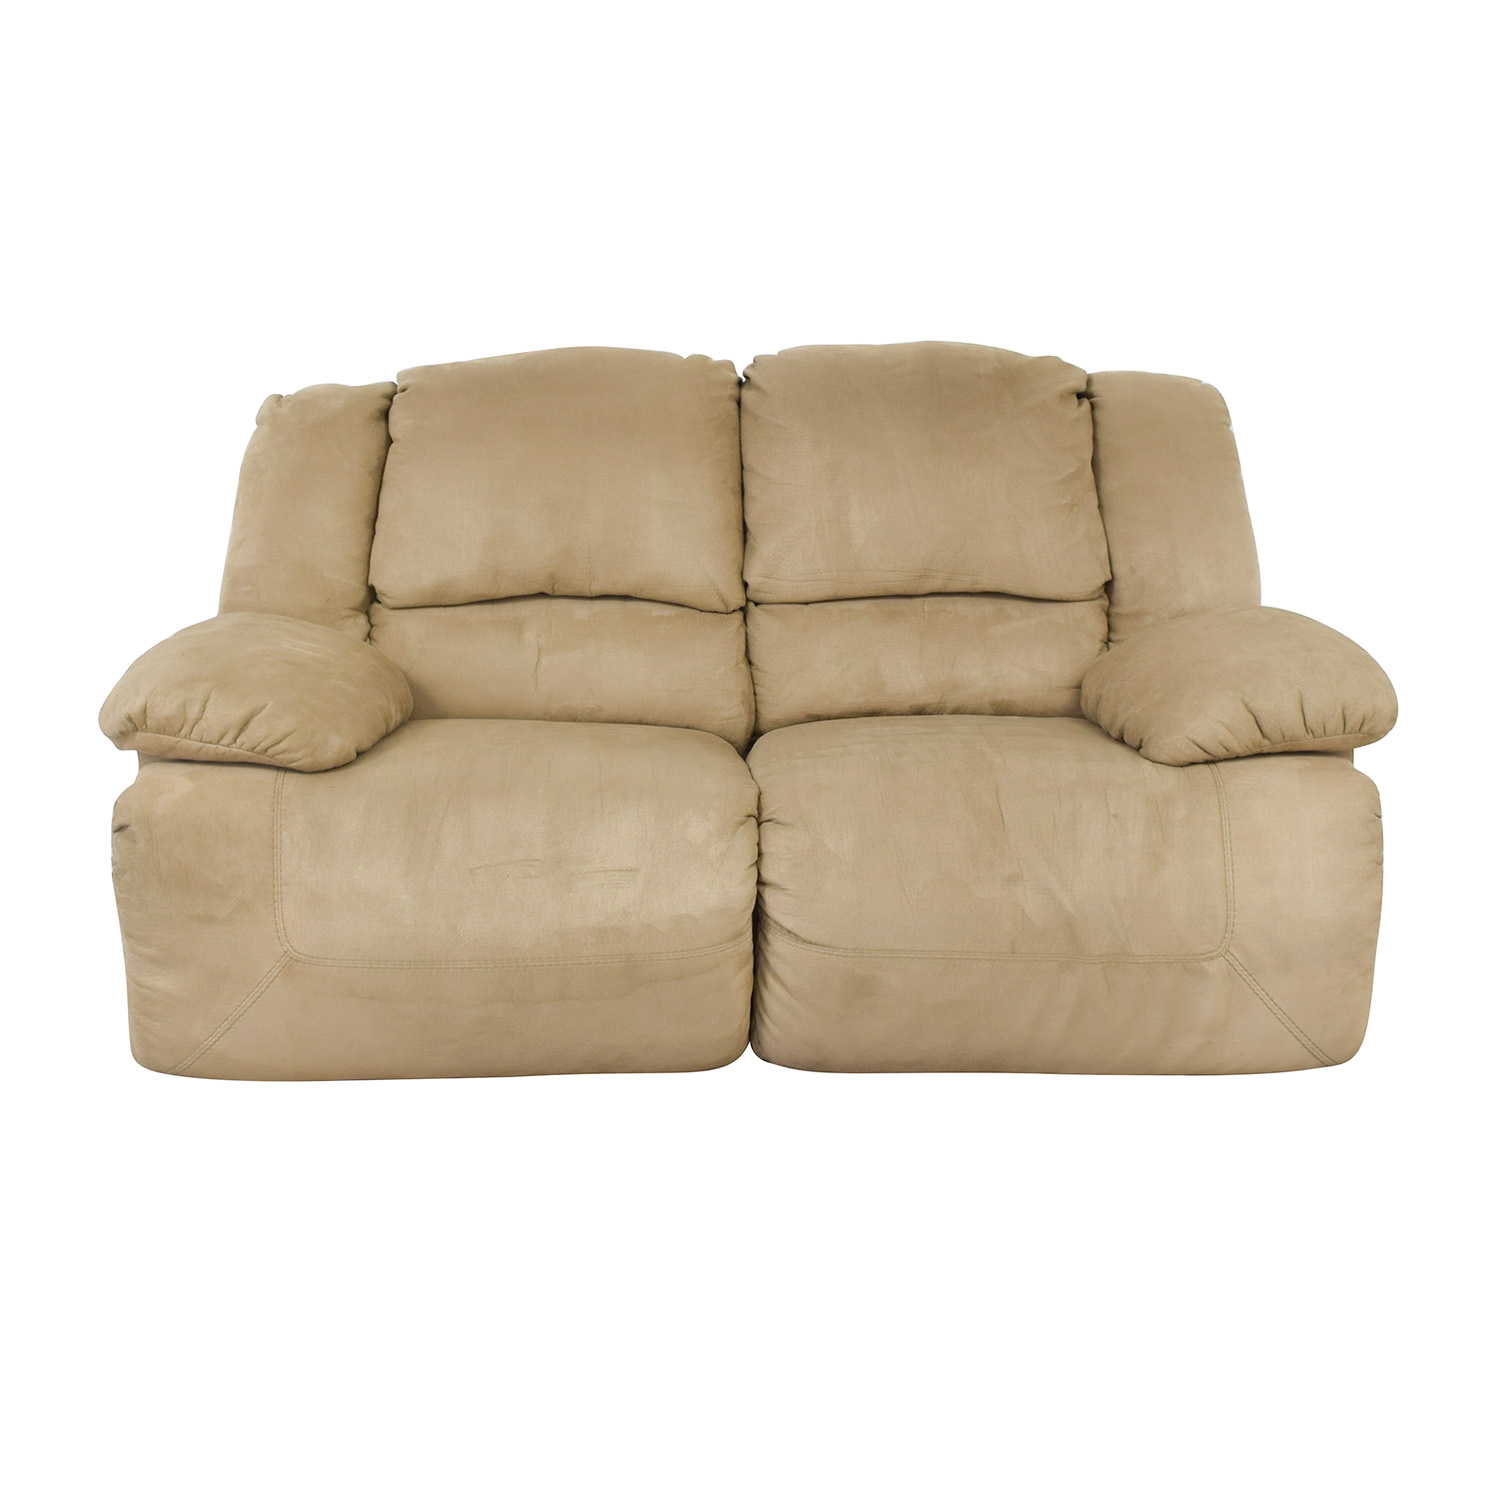 Ashley Furniture Hogan Reclining Loveseat / Loveseats